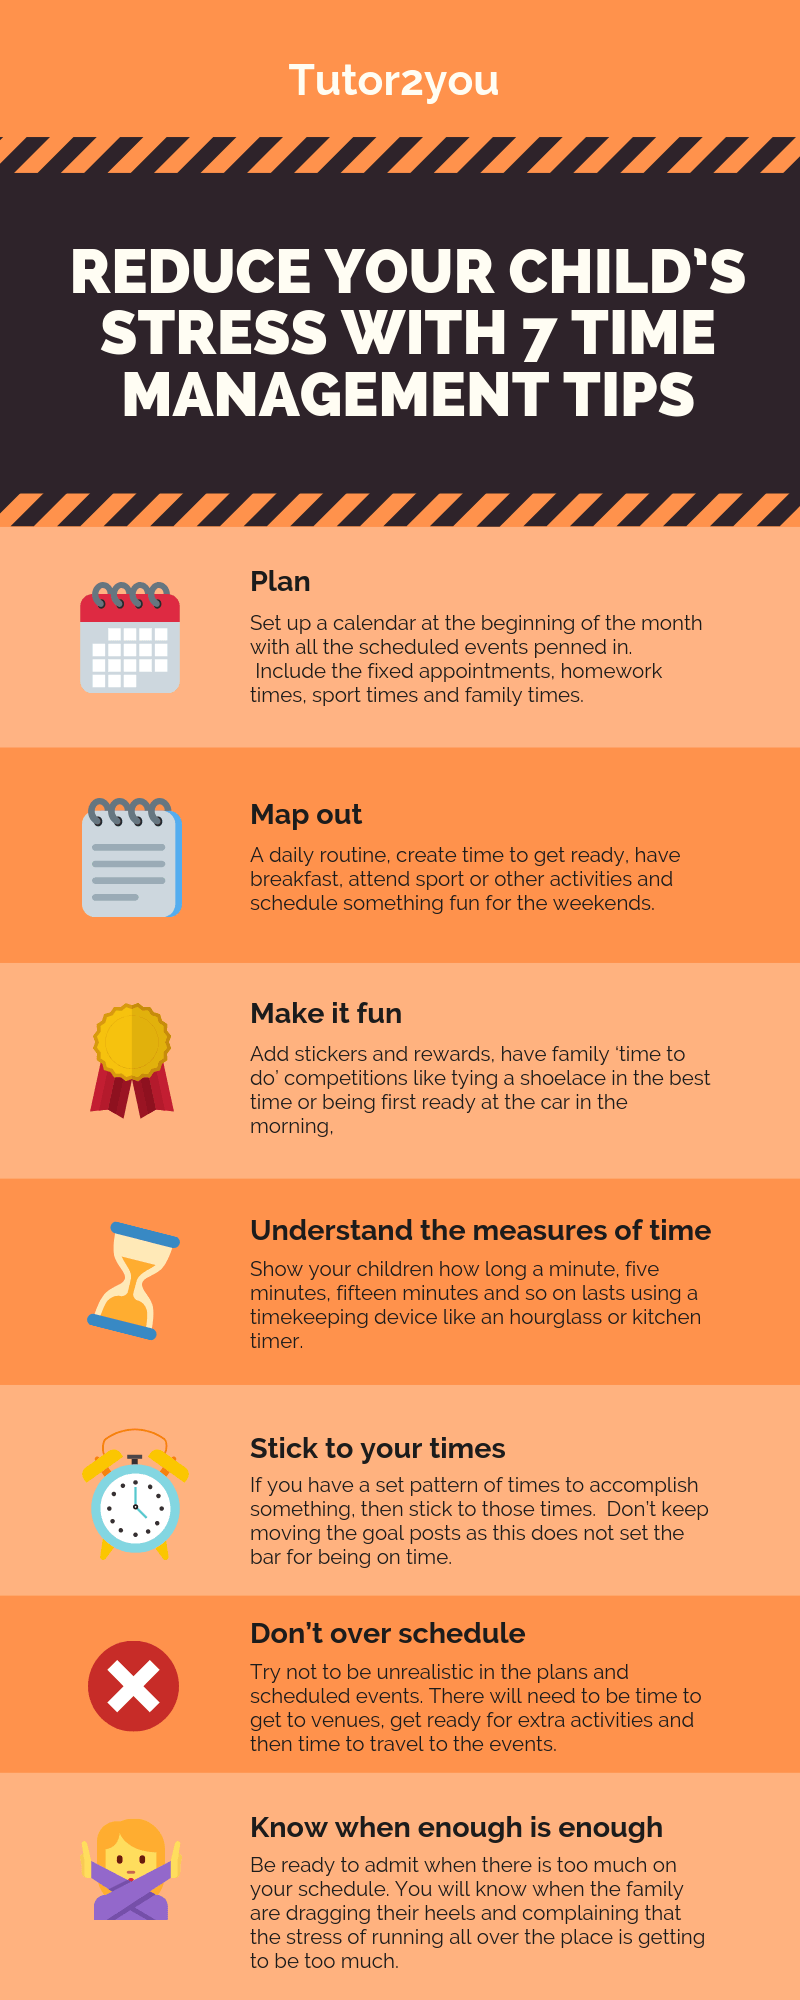 Reduce Your Child's Stress With 7 Time Management Tips - Infographic | Tutor2you